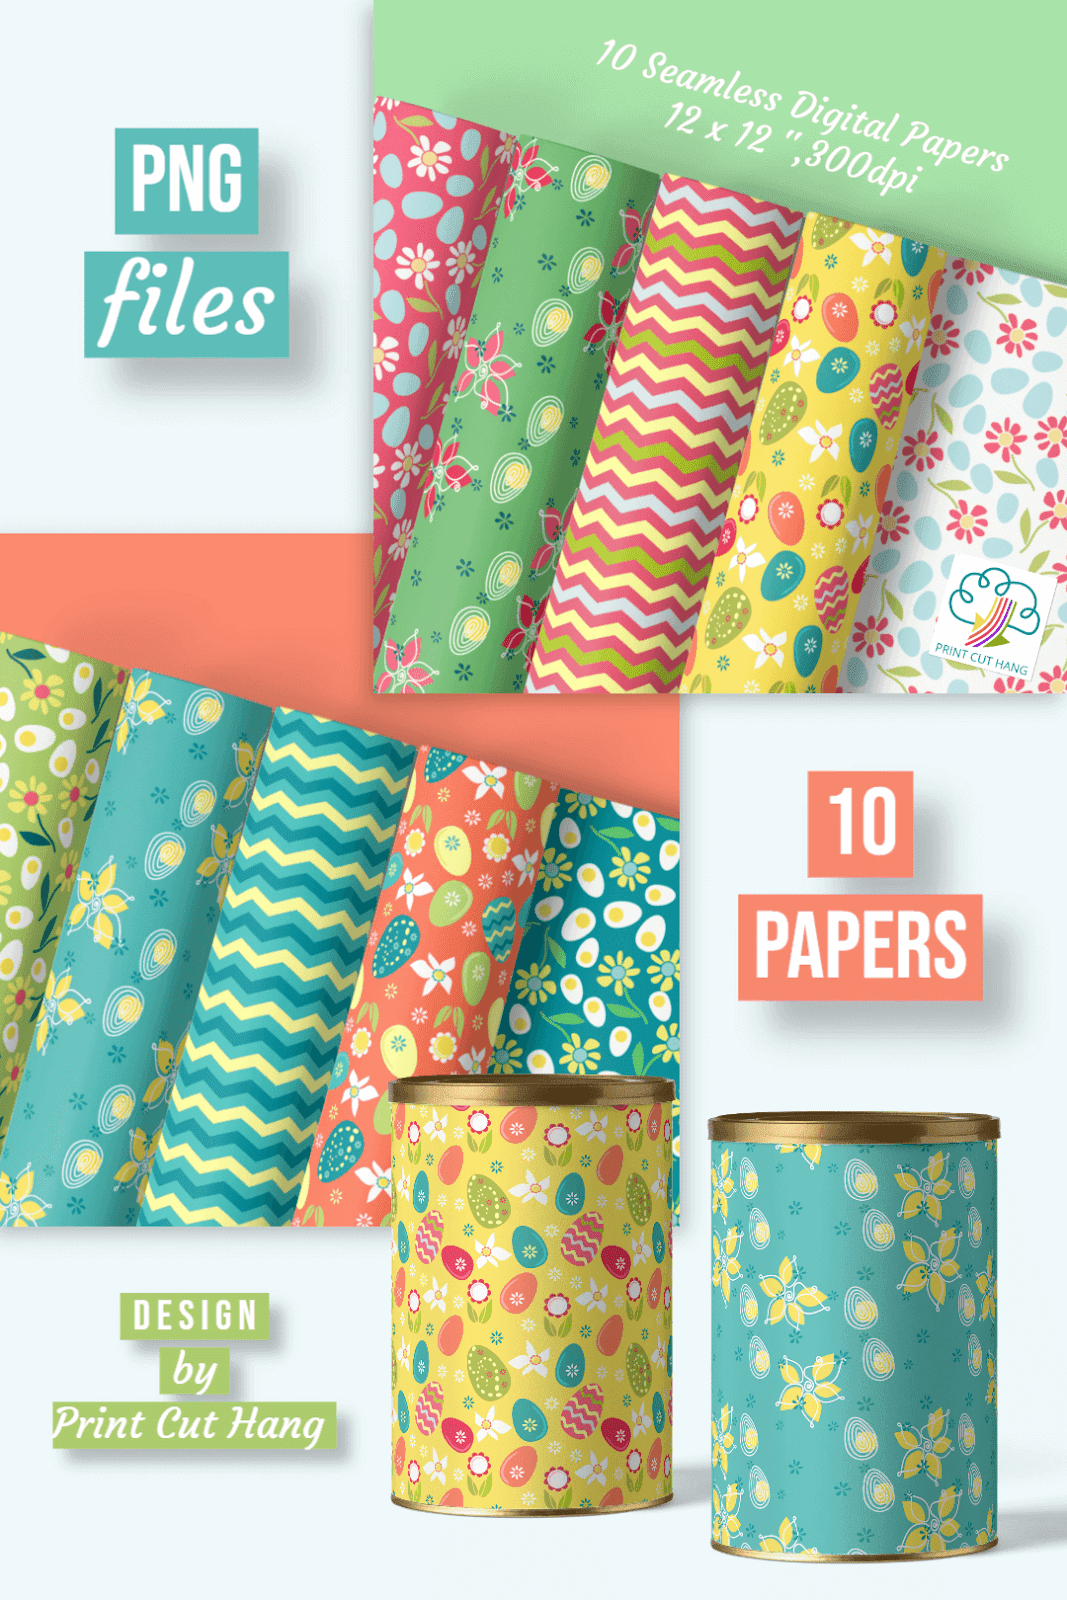 find more digital papers